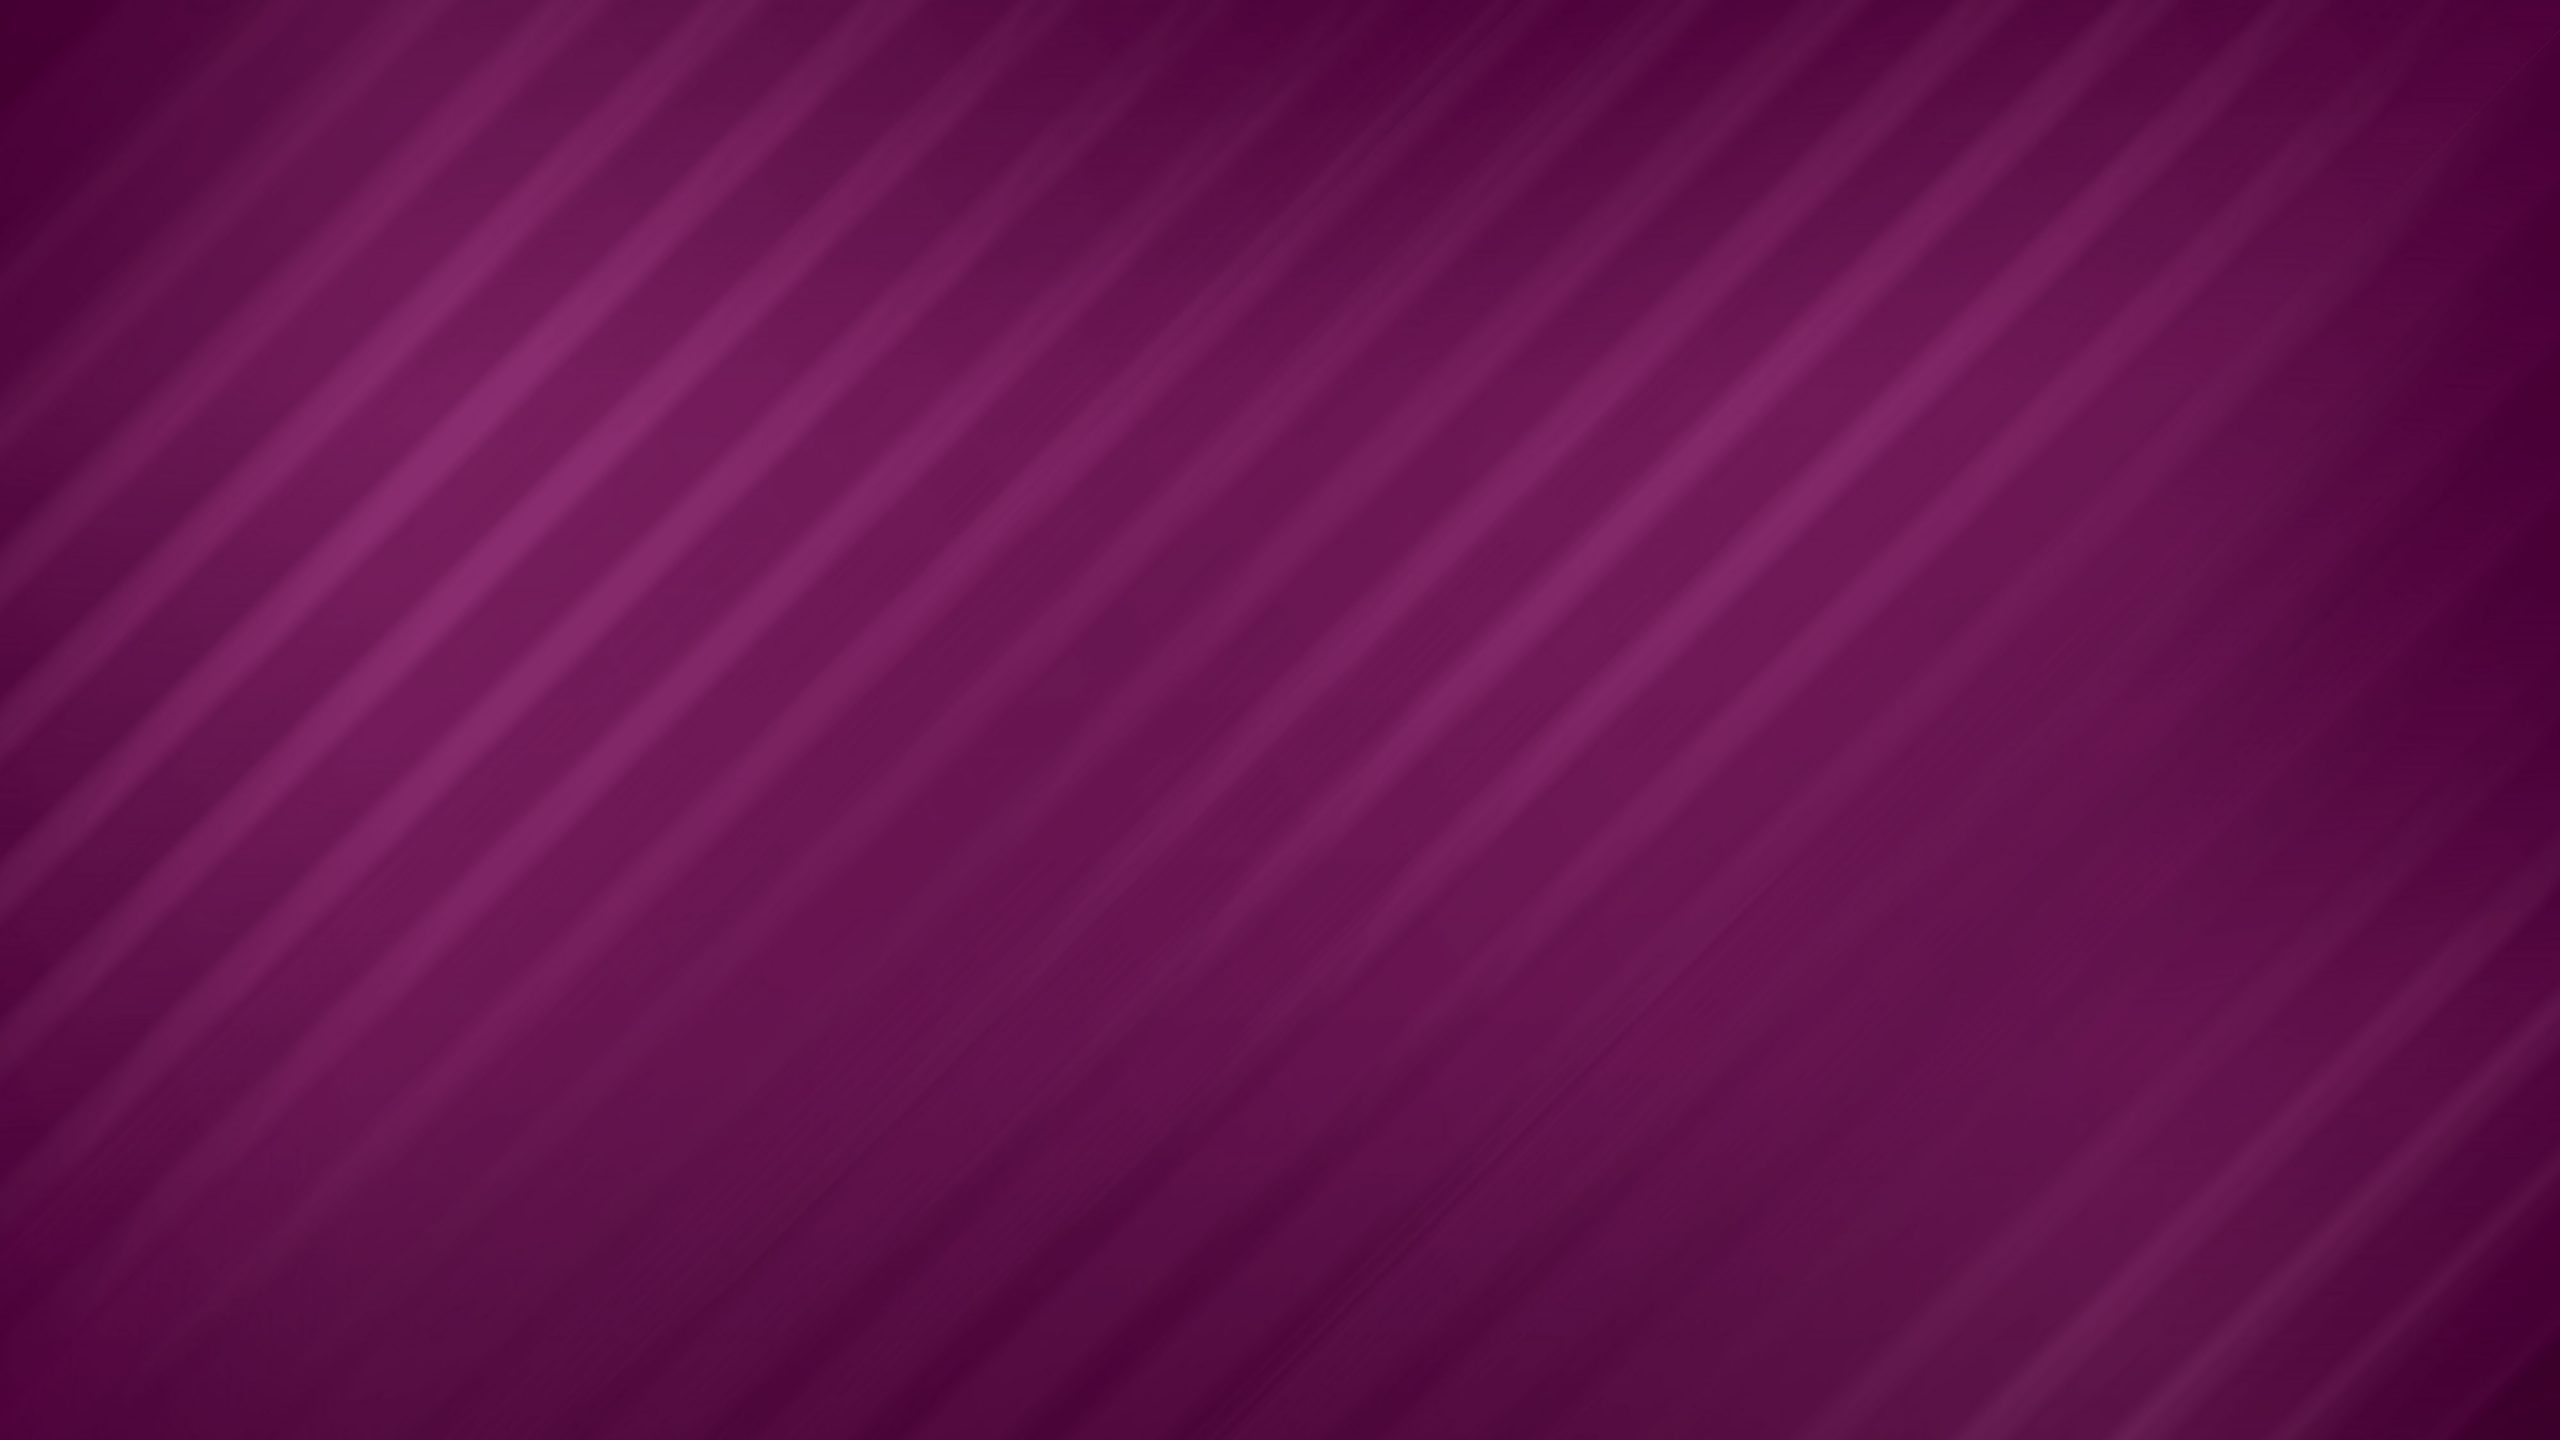 purple-pattern-abstract-background-wallpaper